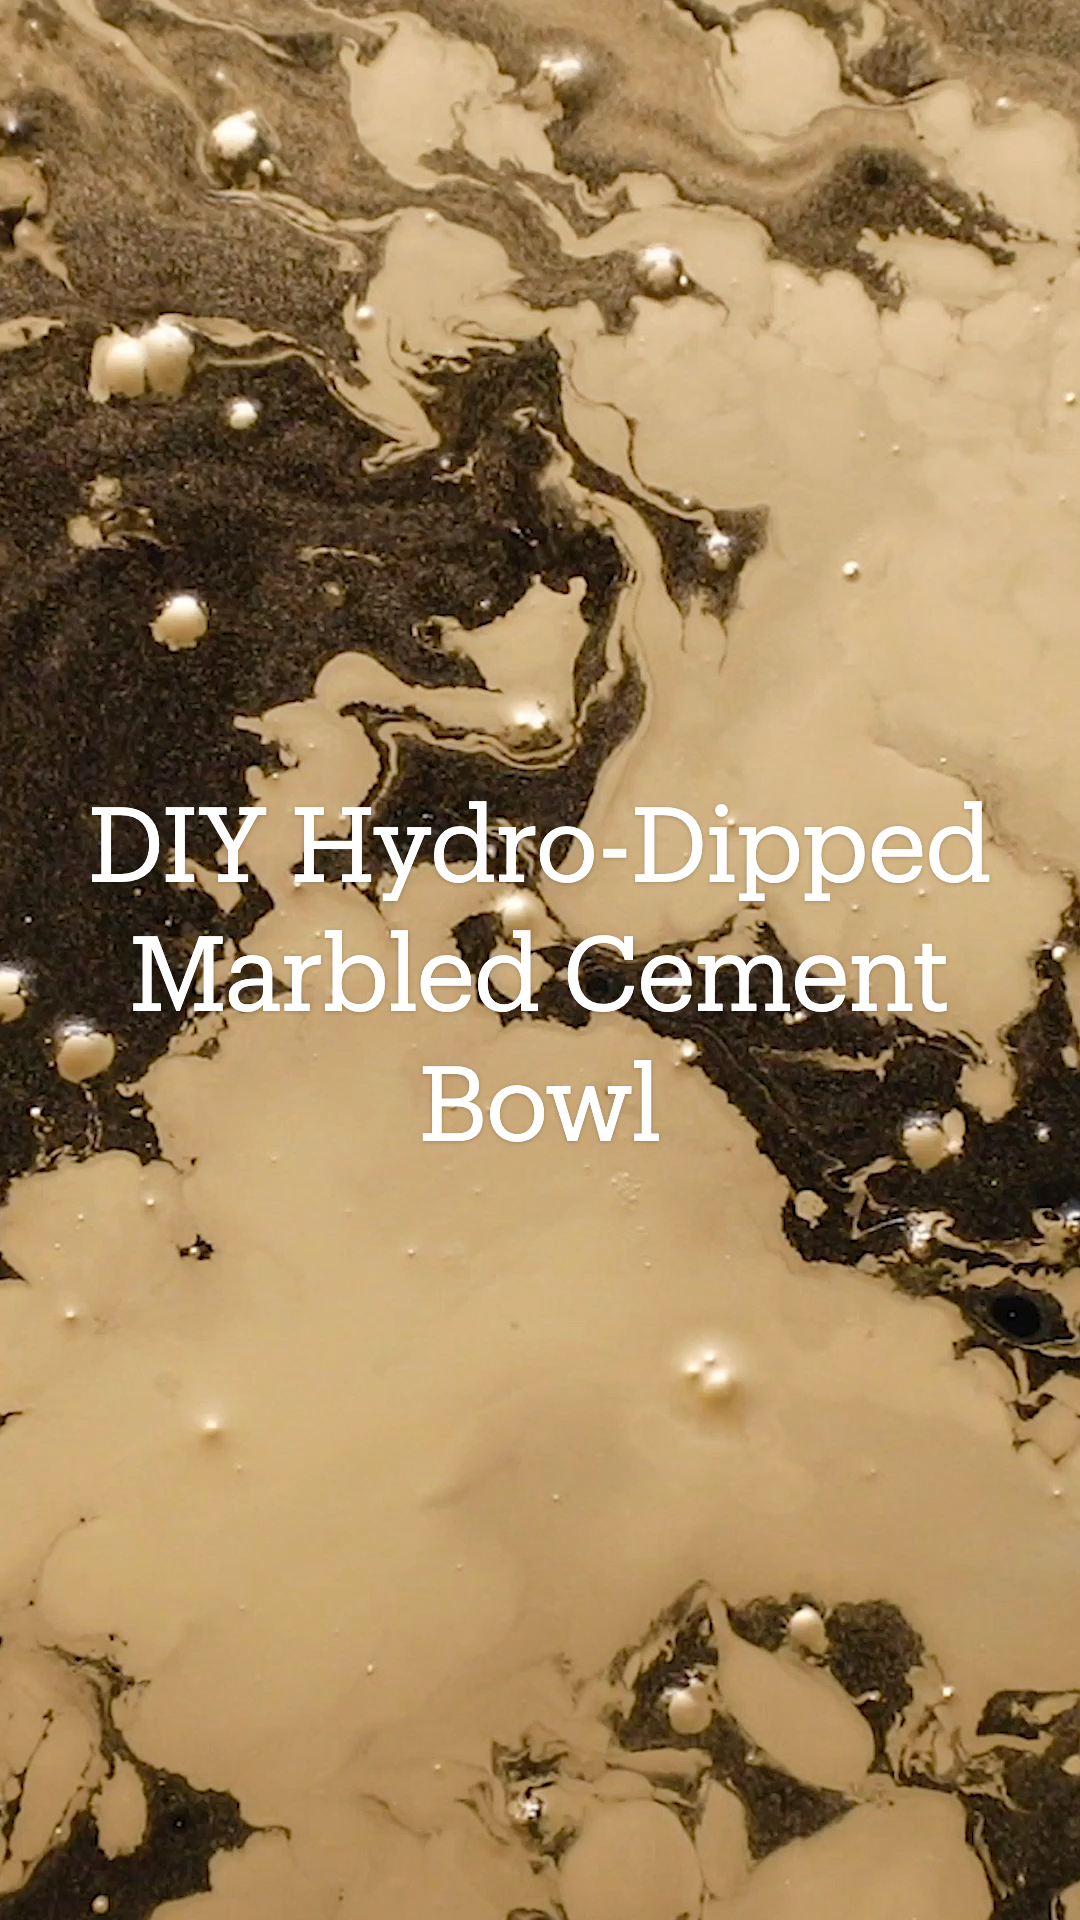 DIY Hydro-Dipped Marbled Cement Bowl